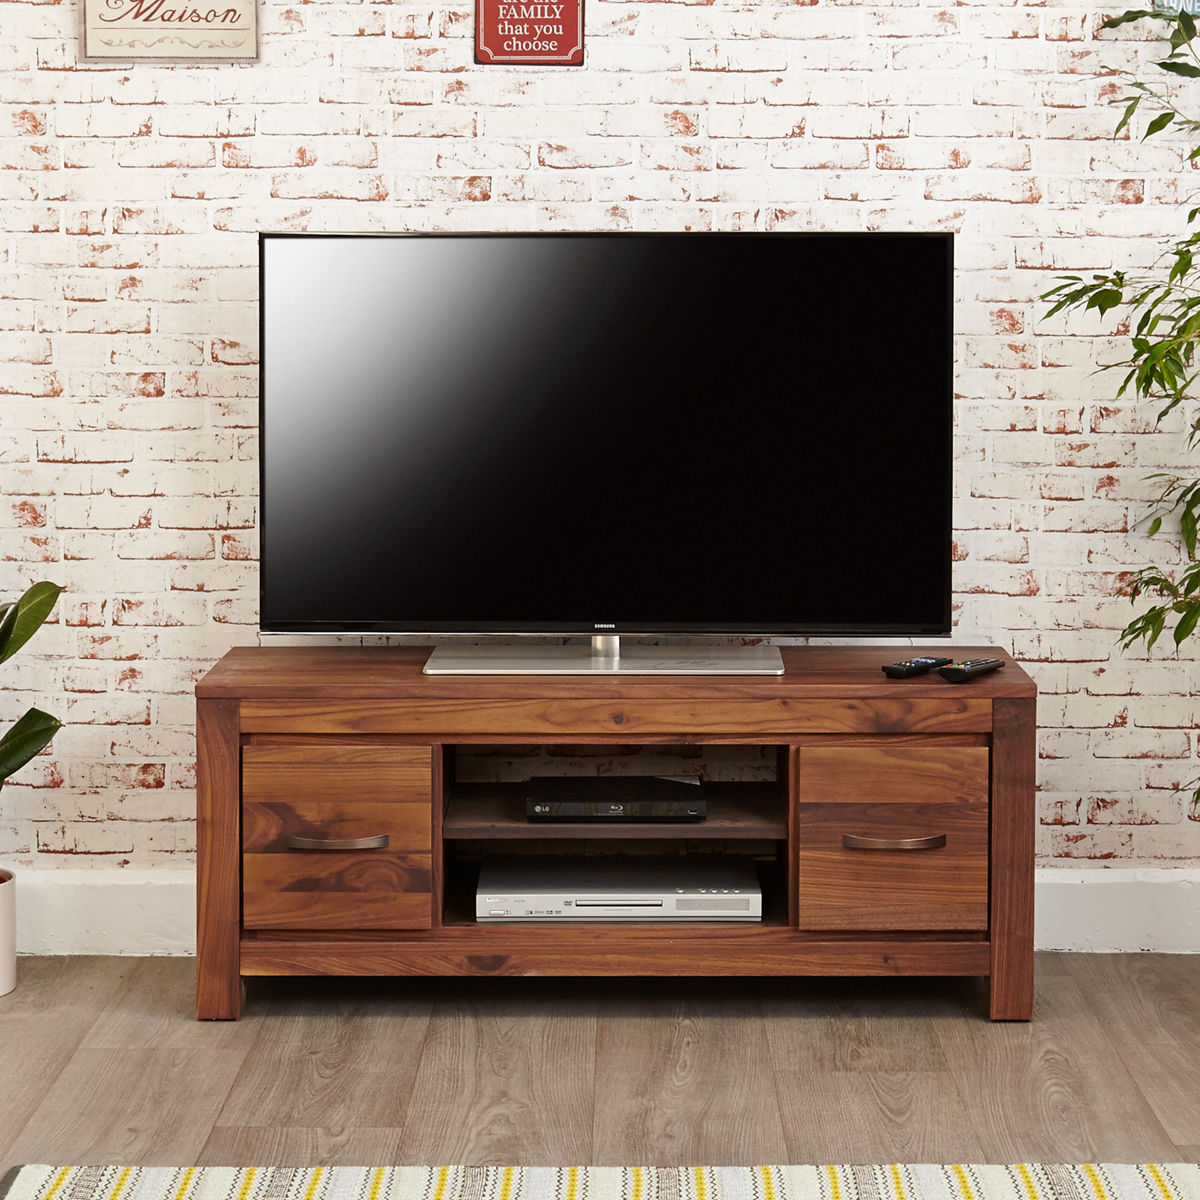 Mayan Walnut Low Television Cabinet Wooden Furniture Store